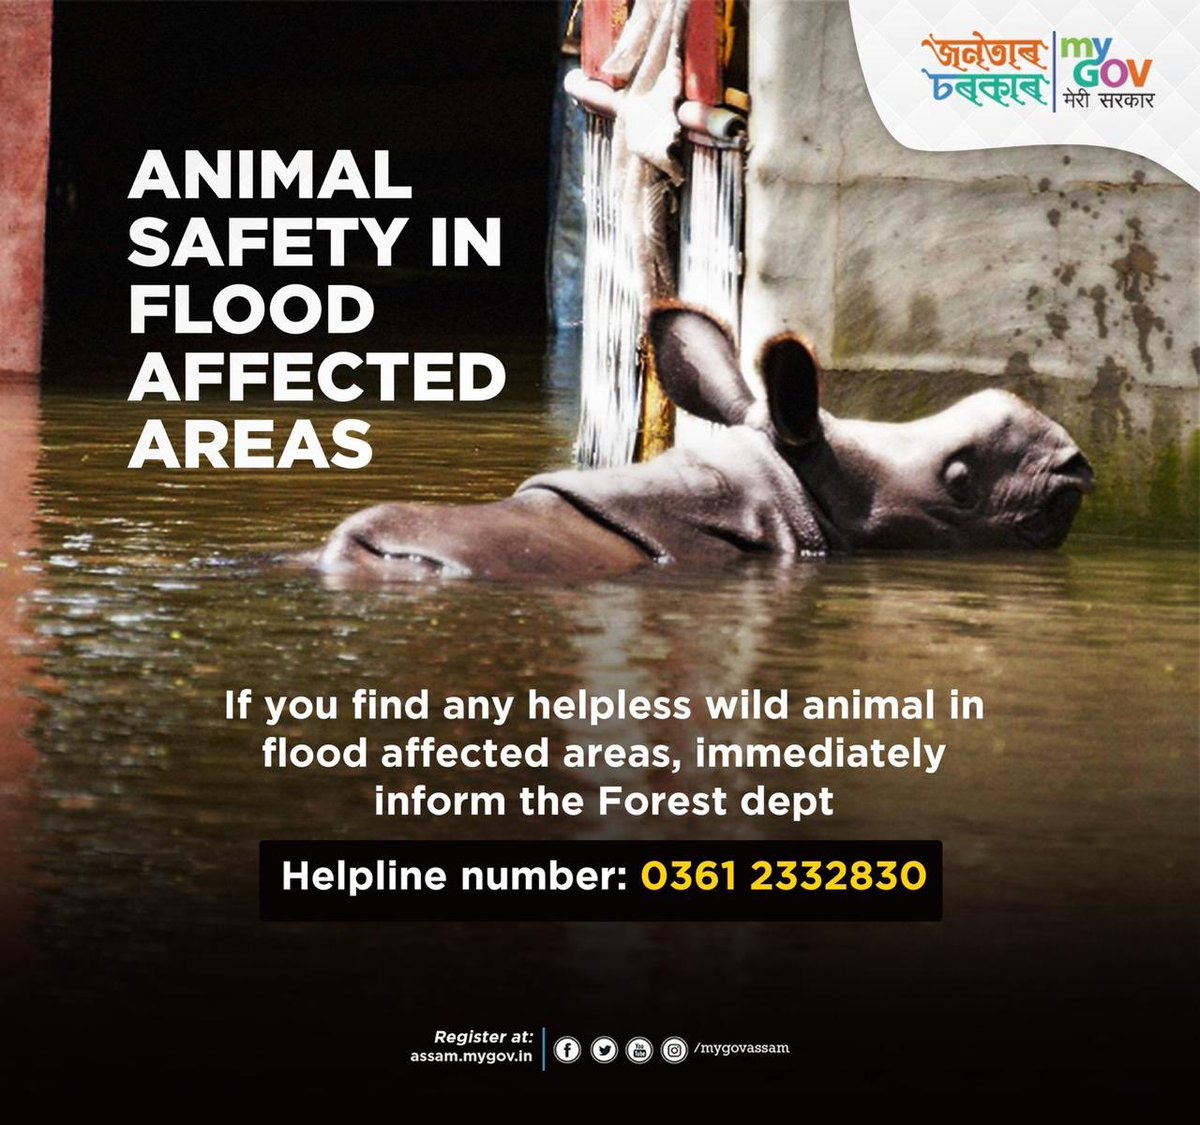 Heartbroken after seeing the havoc caused by the flood in Assam. People of Assam please stay strong. Thoughts & prayers for all living beings there. Please call the forest department on the number below if you see animals in distress situation. #AssamFloods